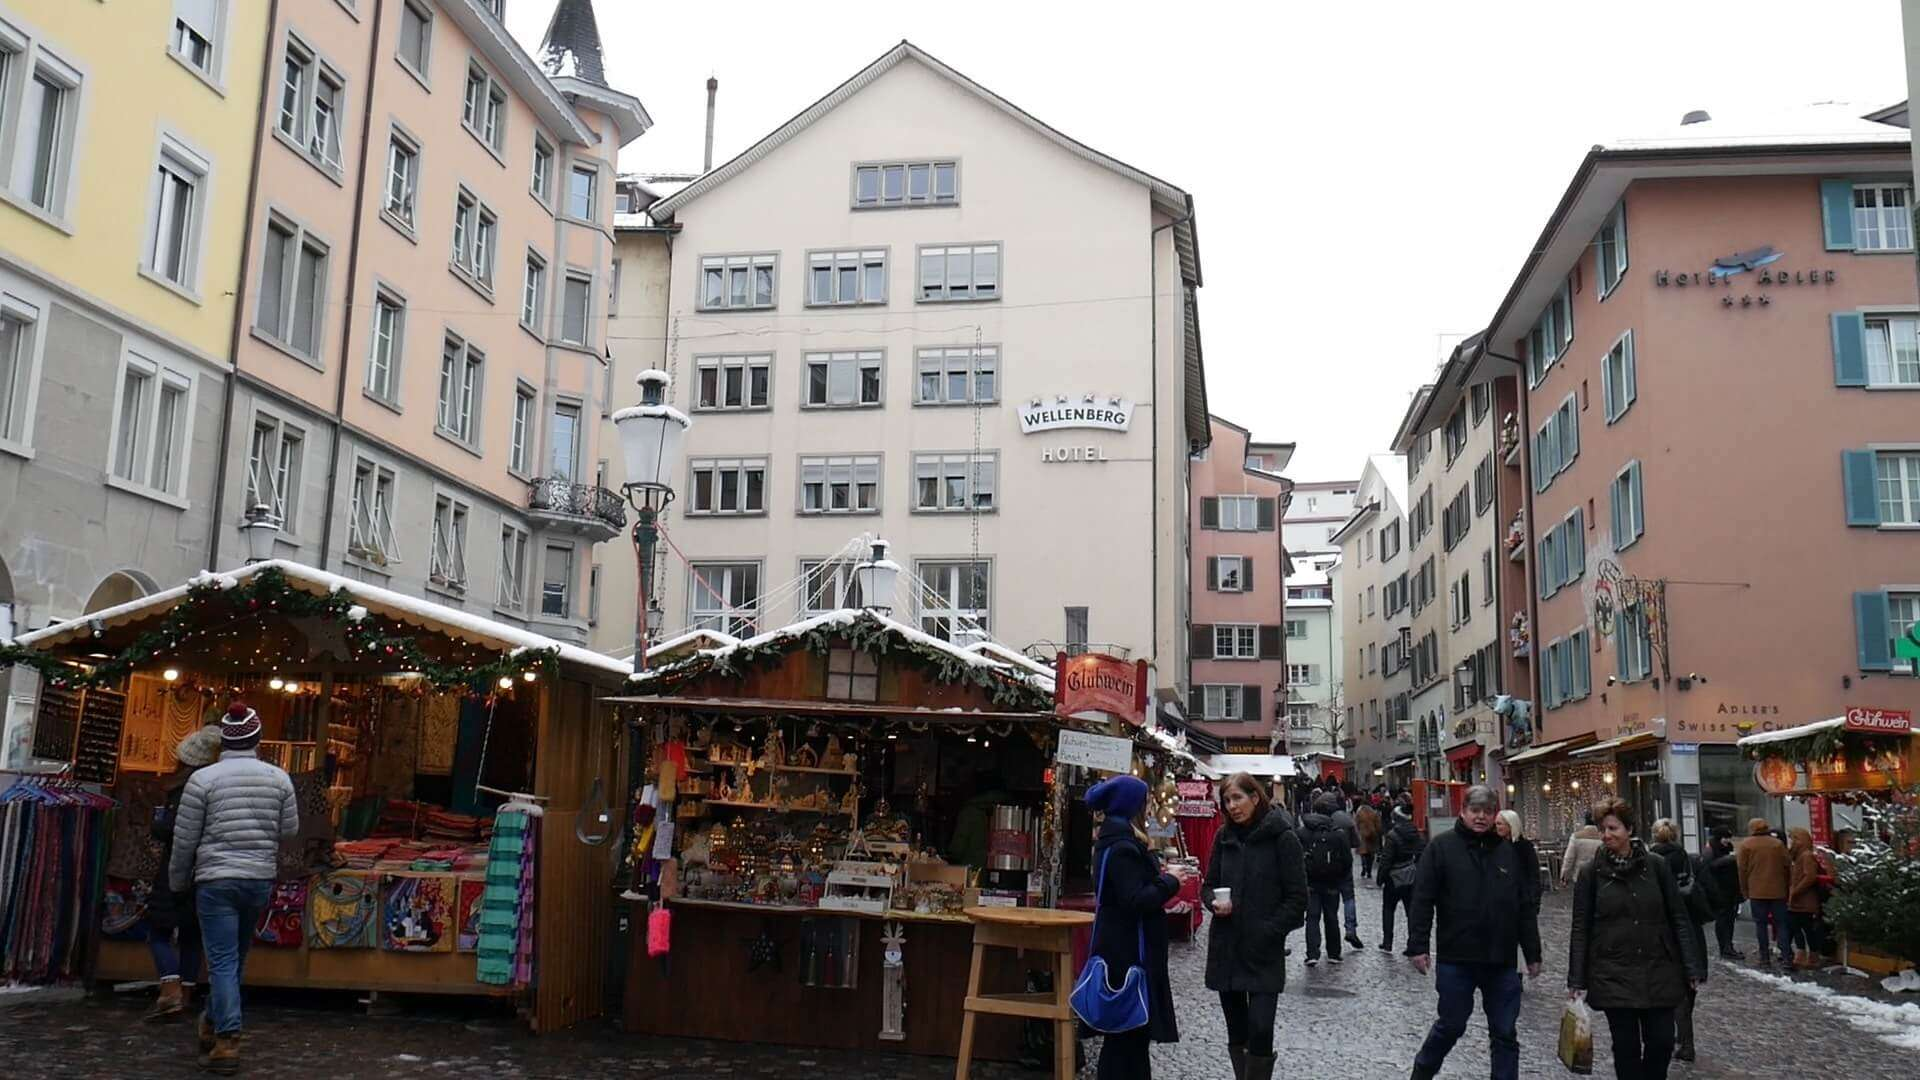 greet you with local heritage ans shopping sites